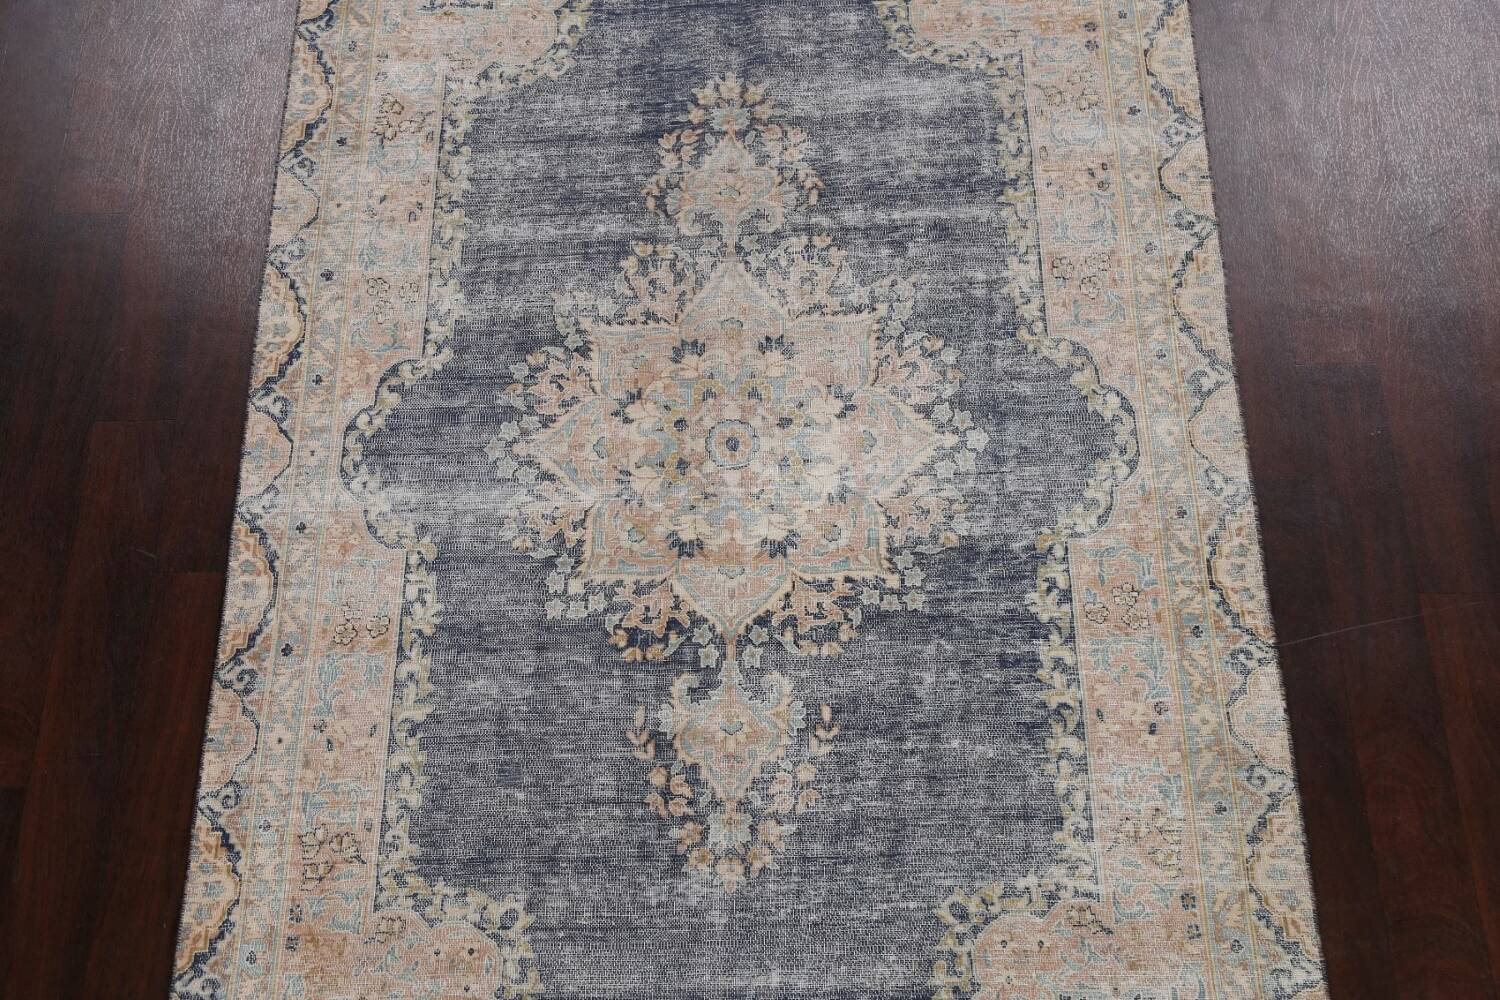 Antique Distressed Over-dyed Kerman Persian Area Rug 5x8 image 3